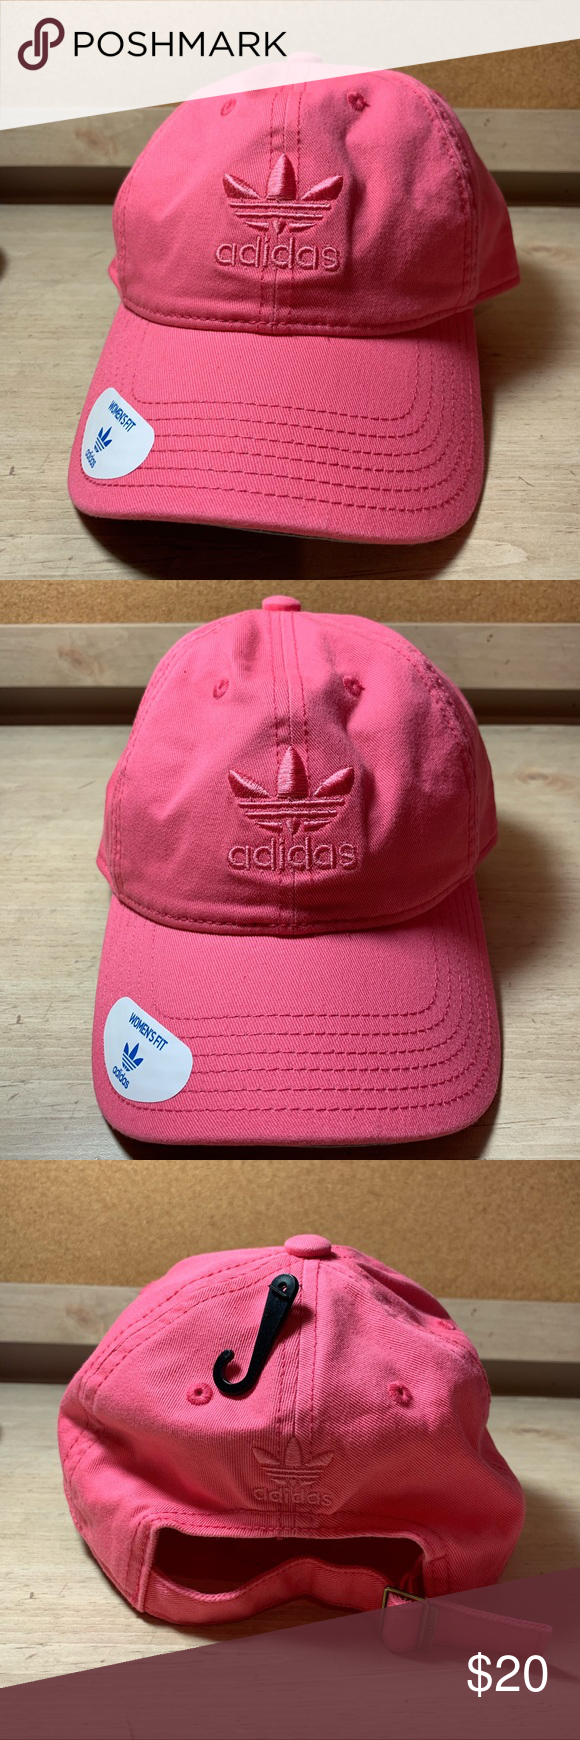 f8634640333 Adidas Relaxed Strapback Cap Hat Women s fit originals relaxed strapback pink  cap. In chalk pink